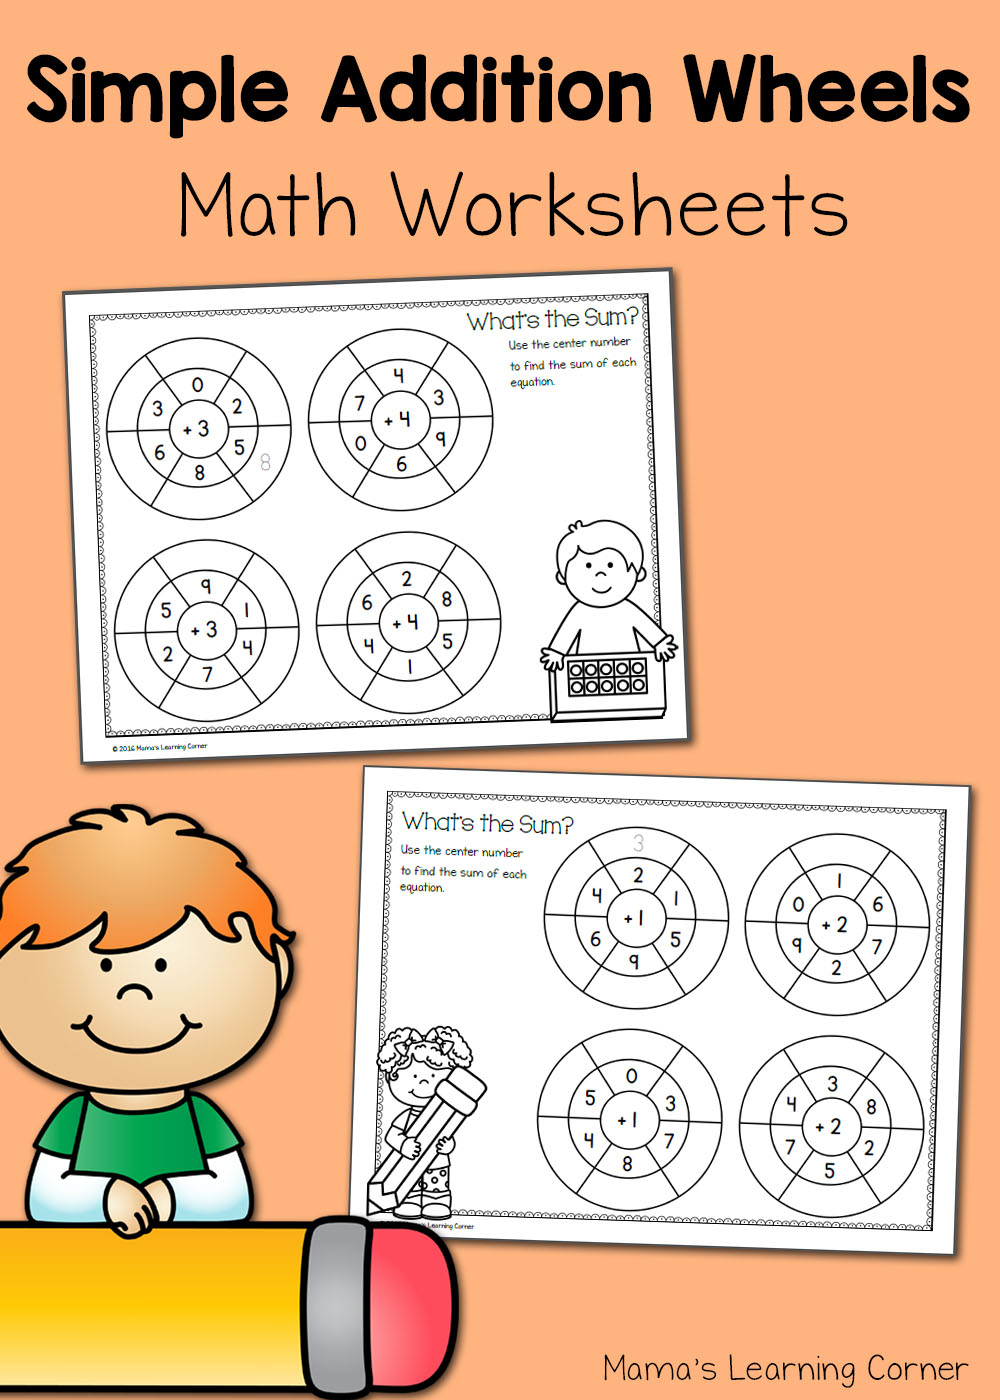 hight resolution of Simple Addition Wheels: Math Worksheets - Mamas Learning Corner